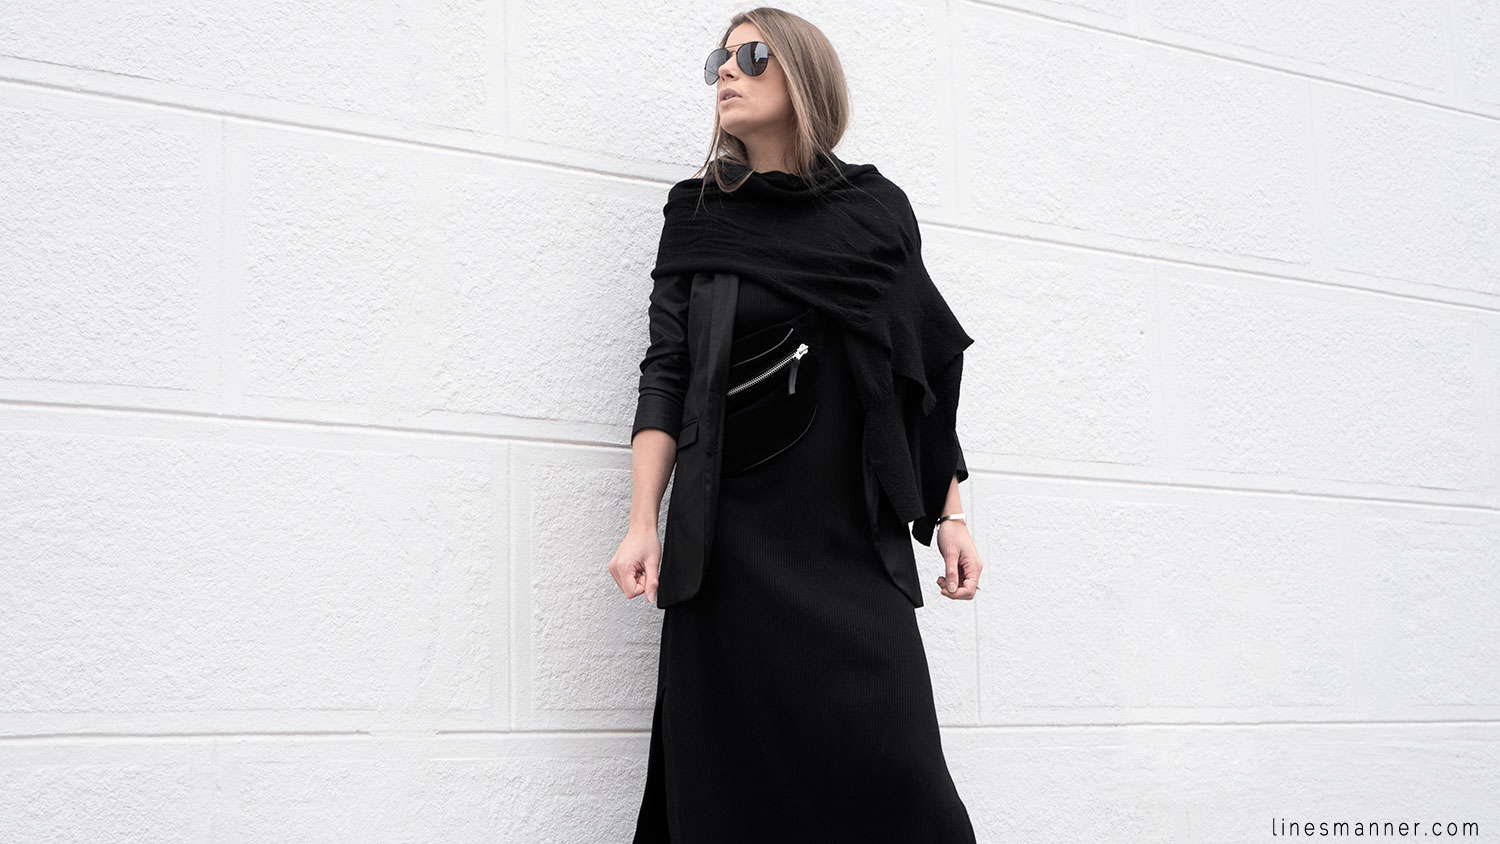 Lines-Manner-Black-Relaxed-Tone_on_Tone-Monochrome-Minimal-Sophistication-Comfort-Modern-Simplicity-Casual-Sporty_Luxe-Slit_Dress-Thrid_Form-Blazer-Essentials-Details-Basics-Timeless-Verstatile-Staple-Wardrobe-Sleek-Clean_Lines-All_Black_Everything-7